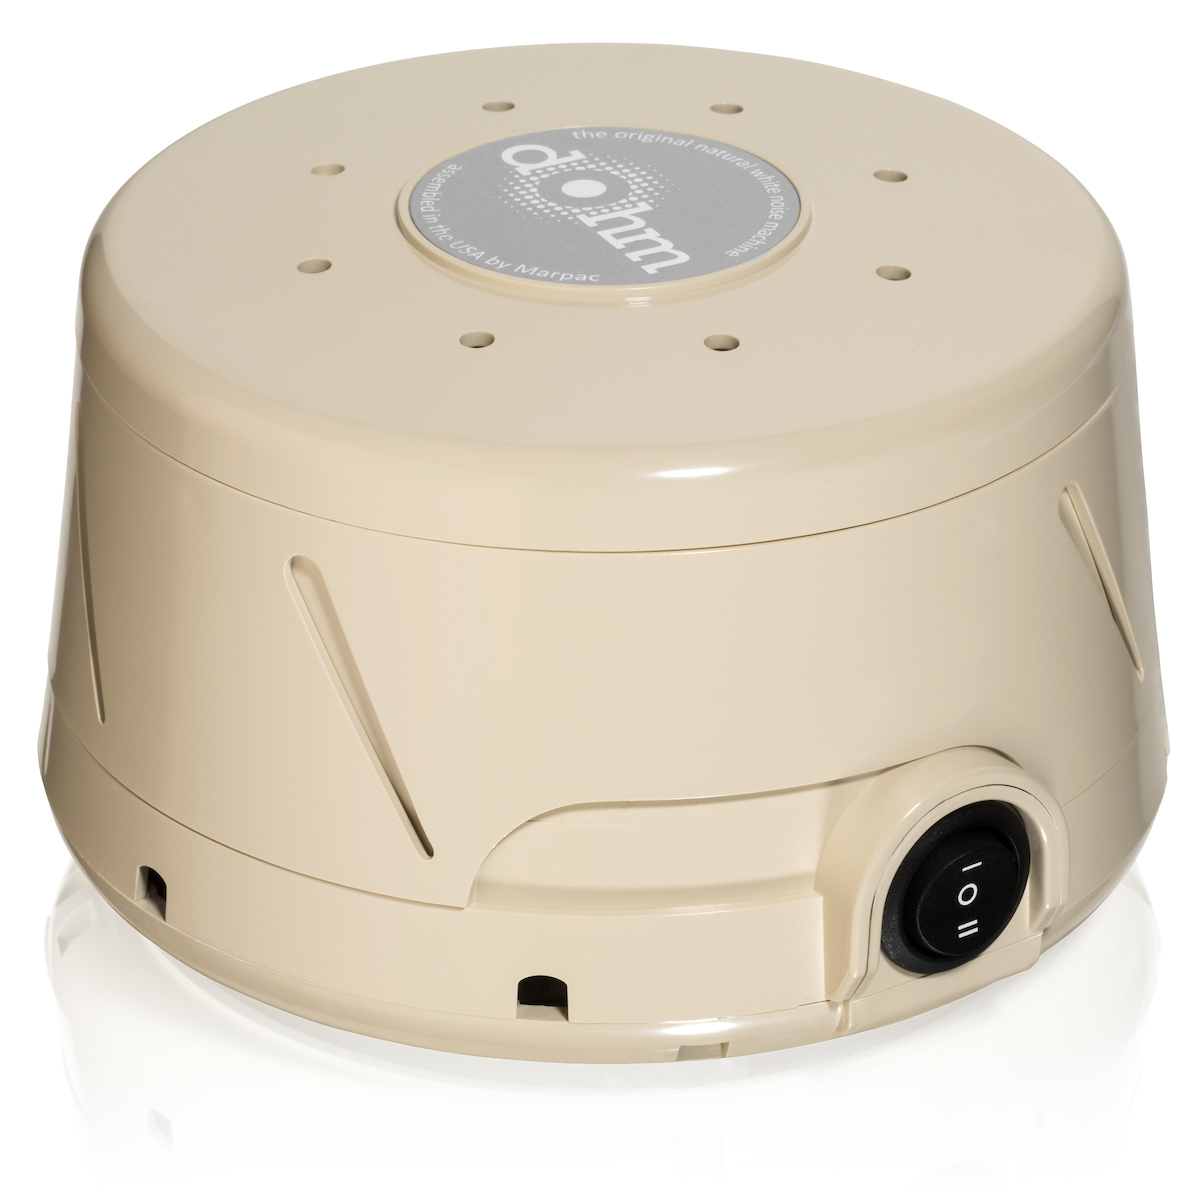 Marpac Dohm Classic - Original White Noise Machine